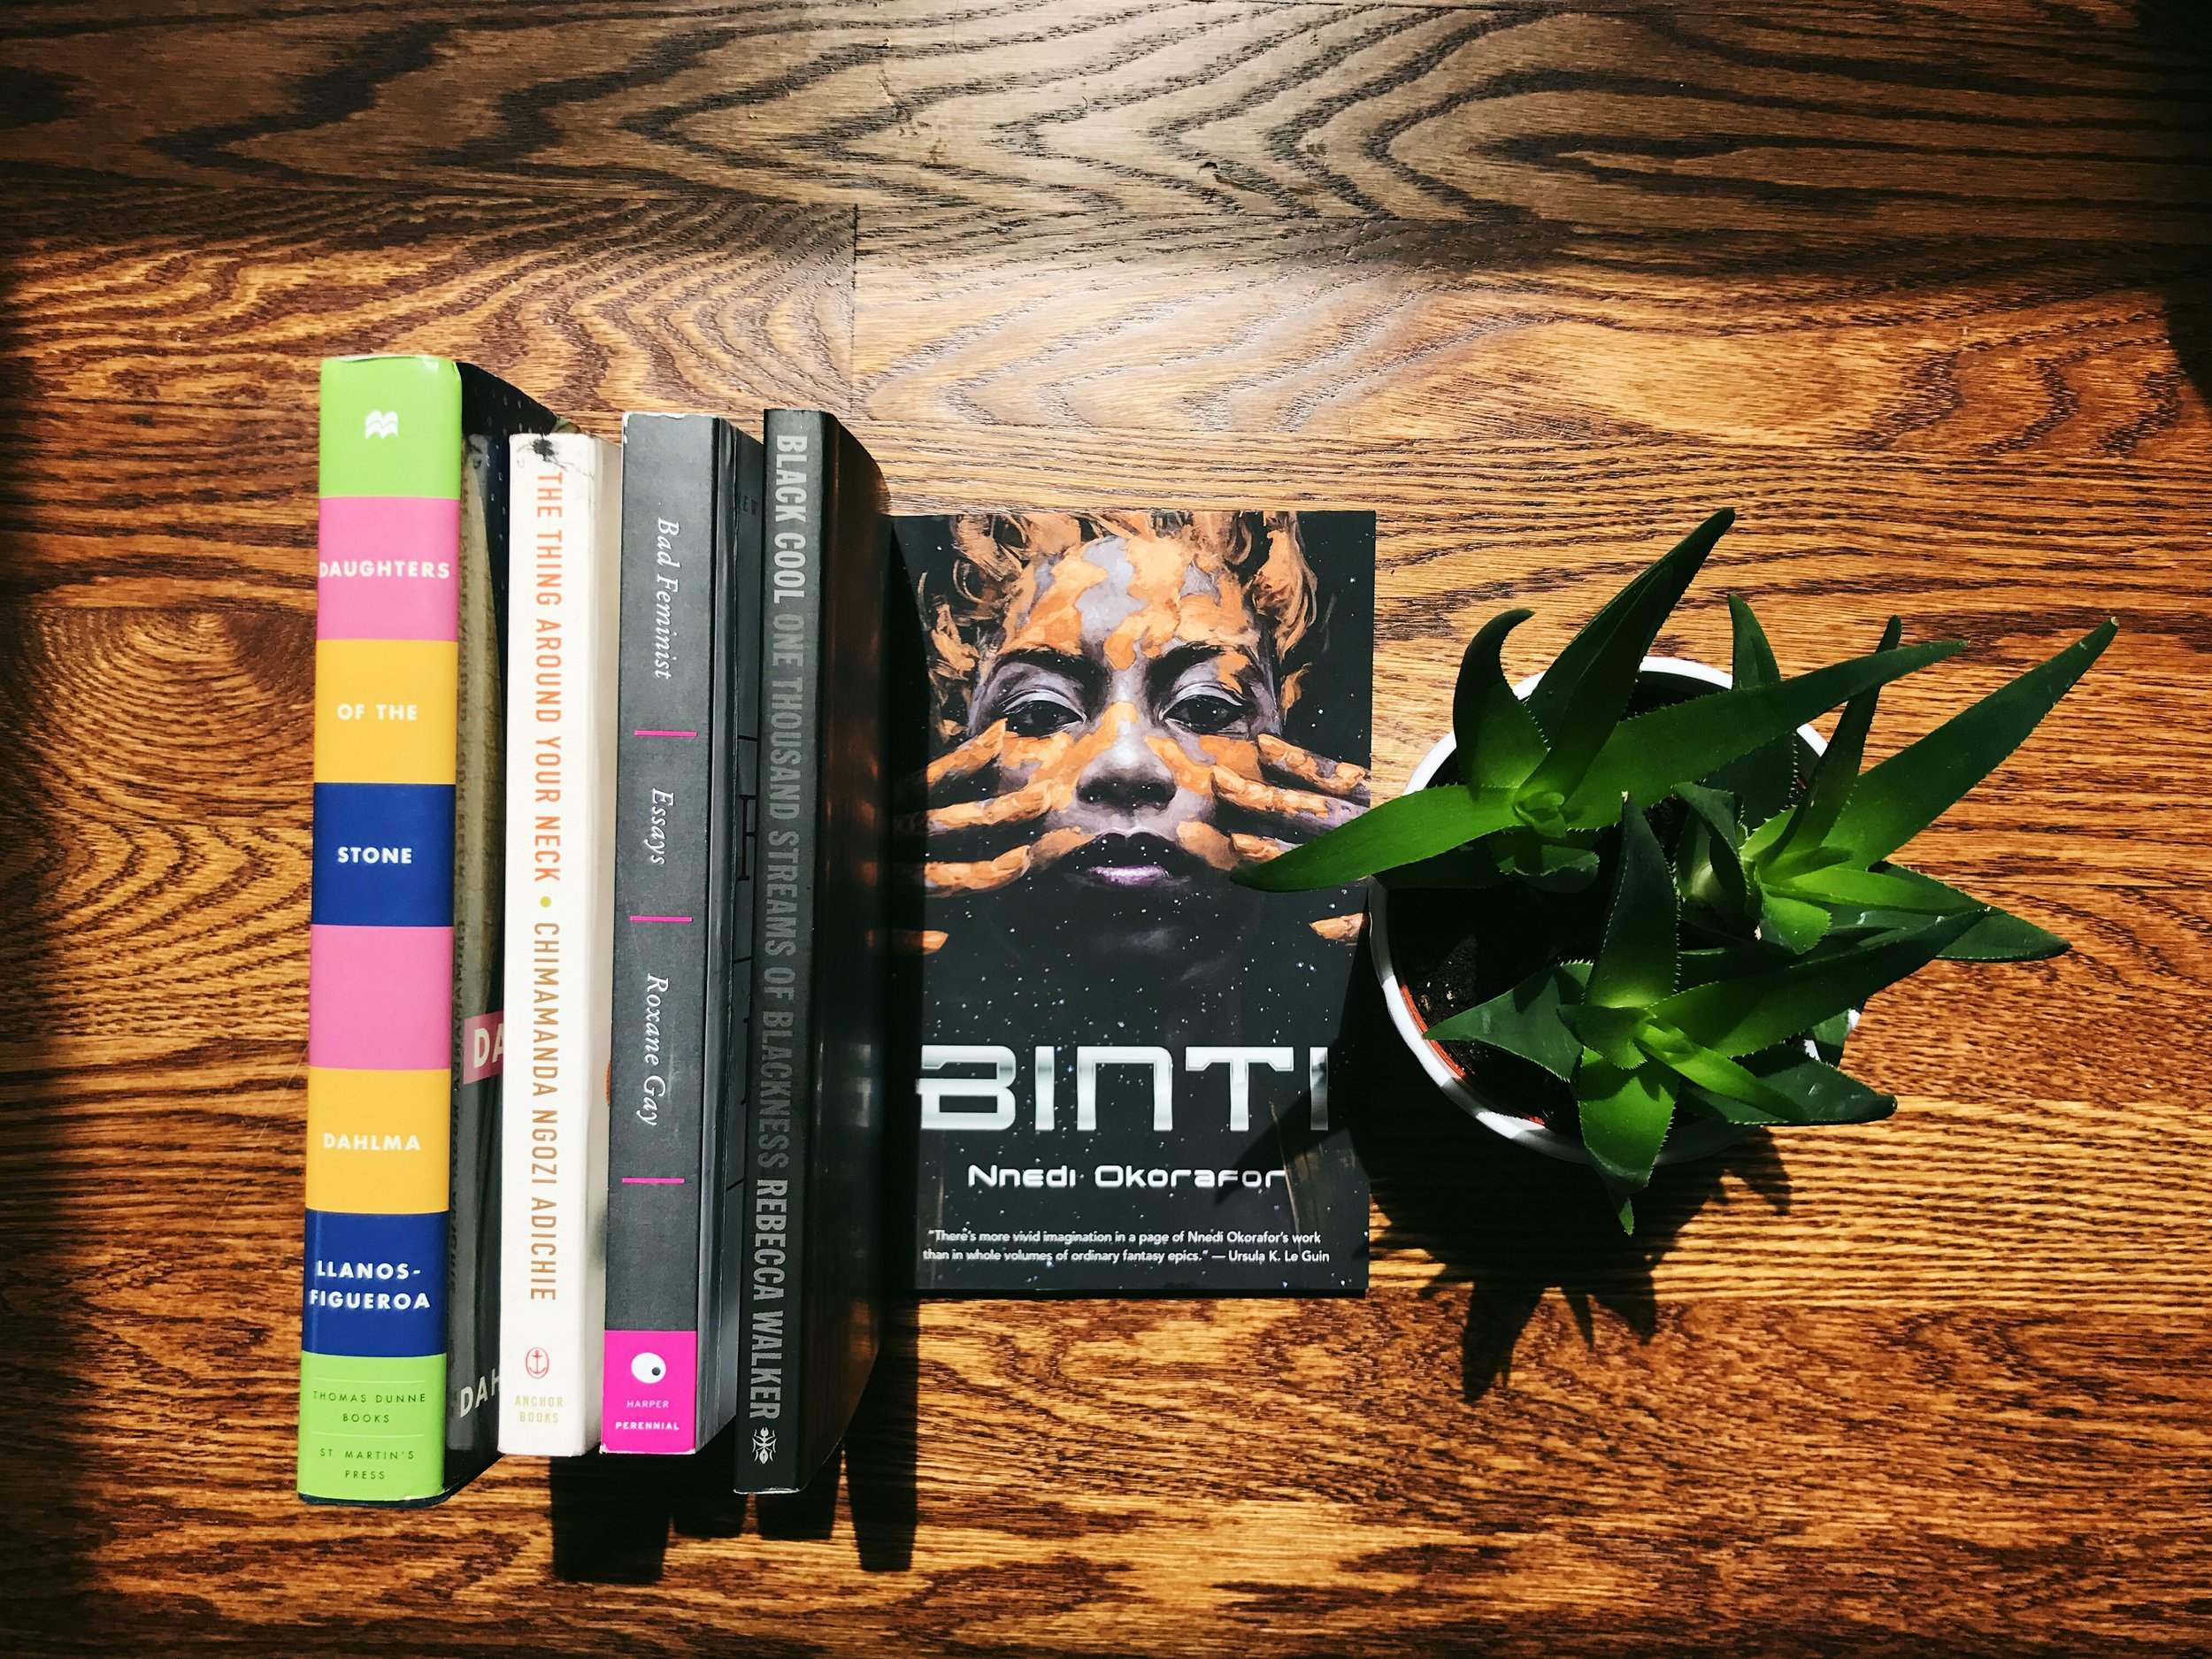 books on wooden floor with green plant